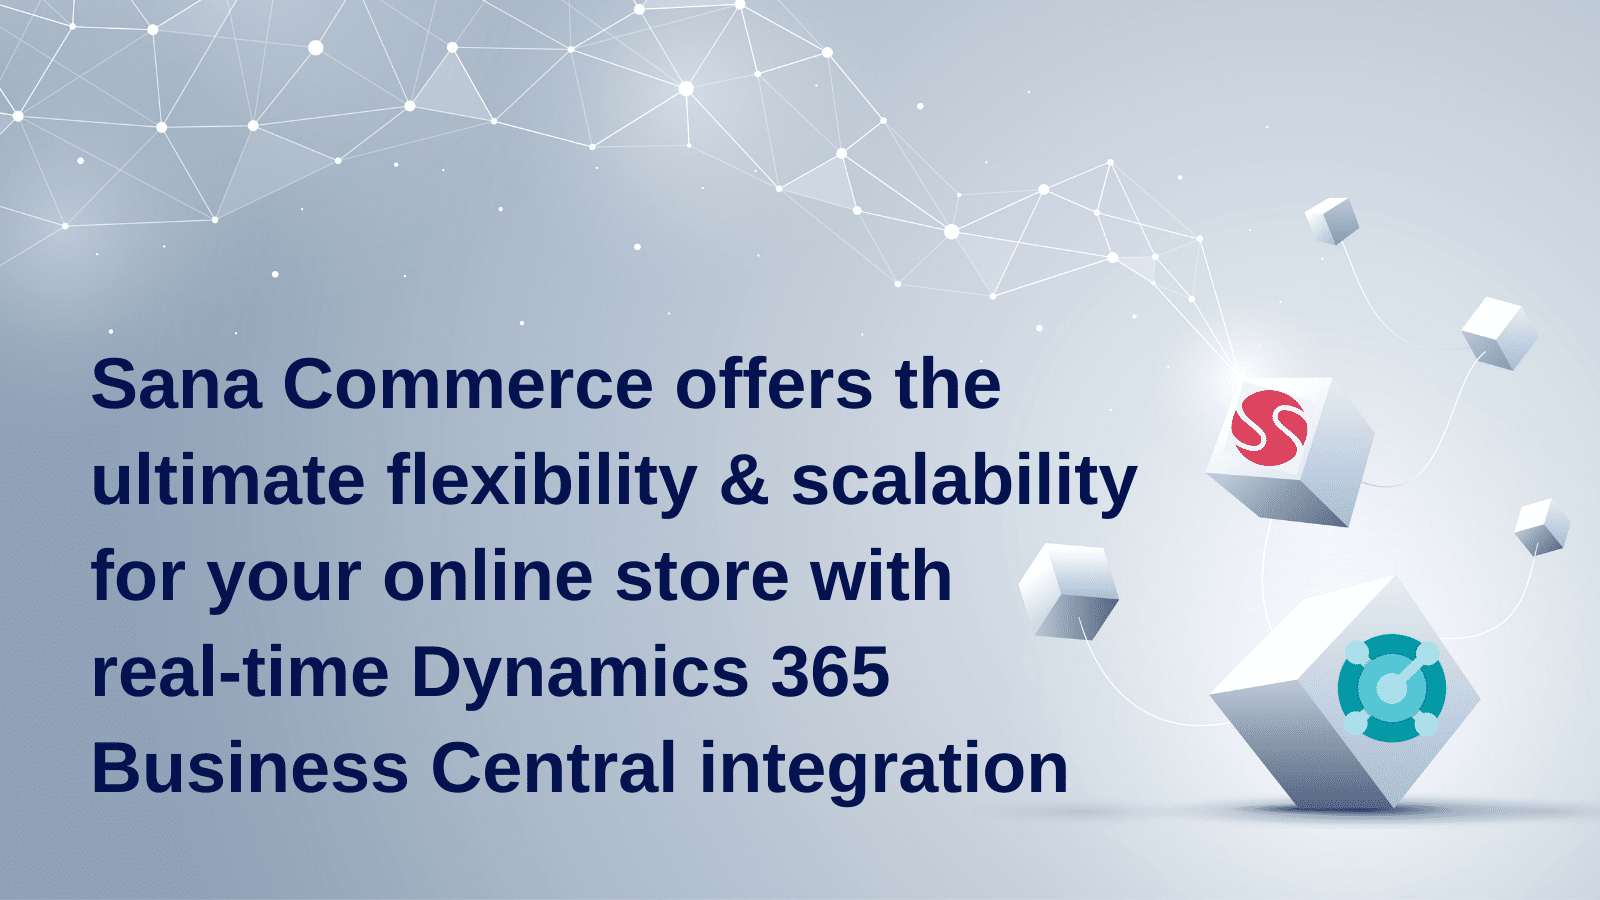 Sana Commerce offers the ultimate flexibility and scalability for your online store with real-time Dynamics 365 Business Central integration.